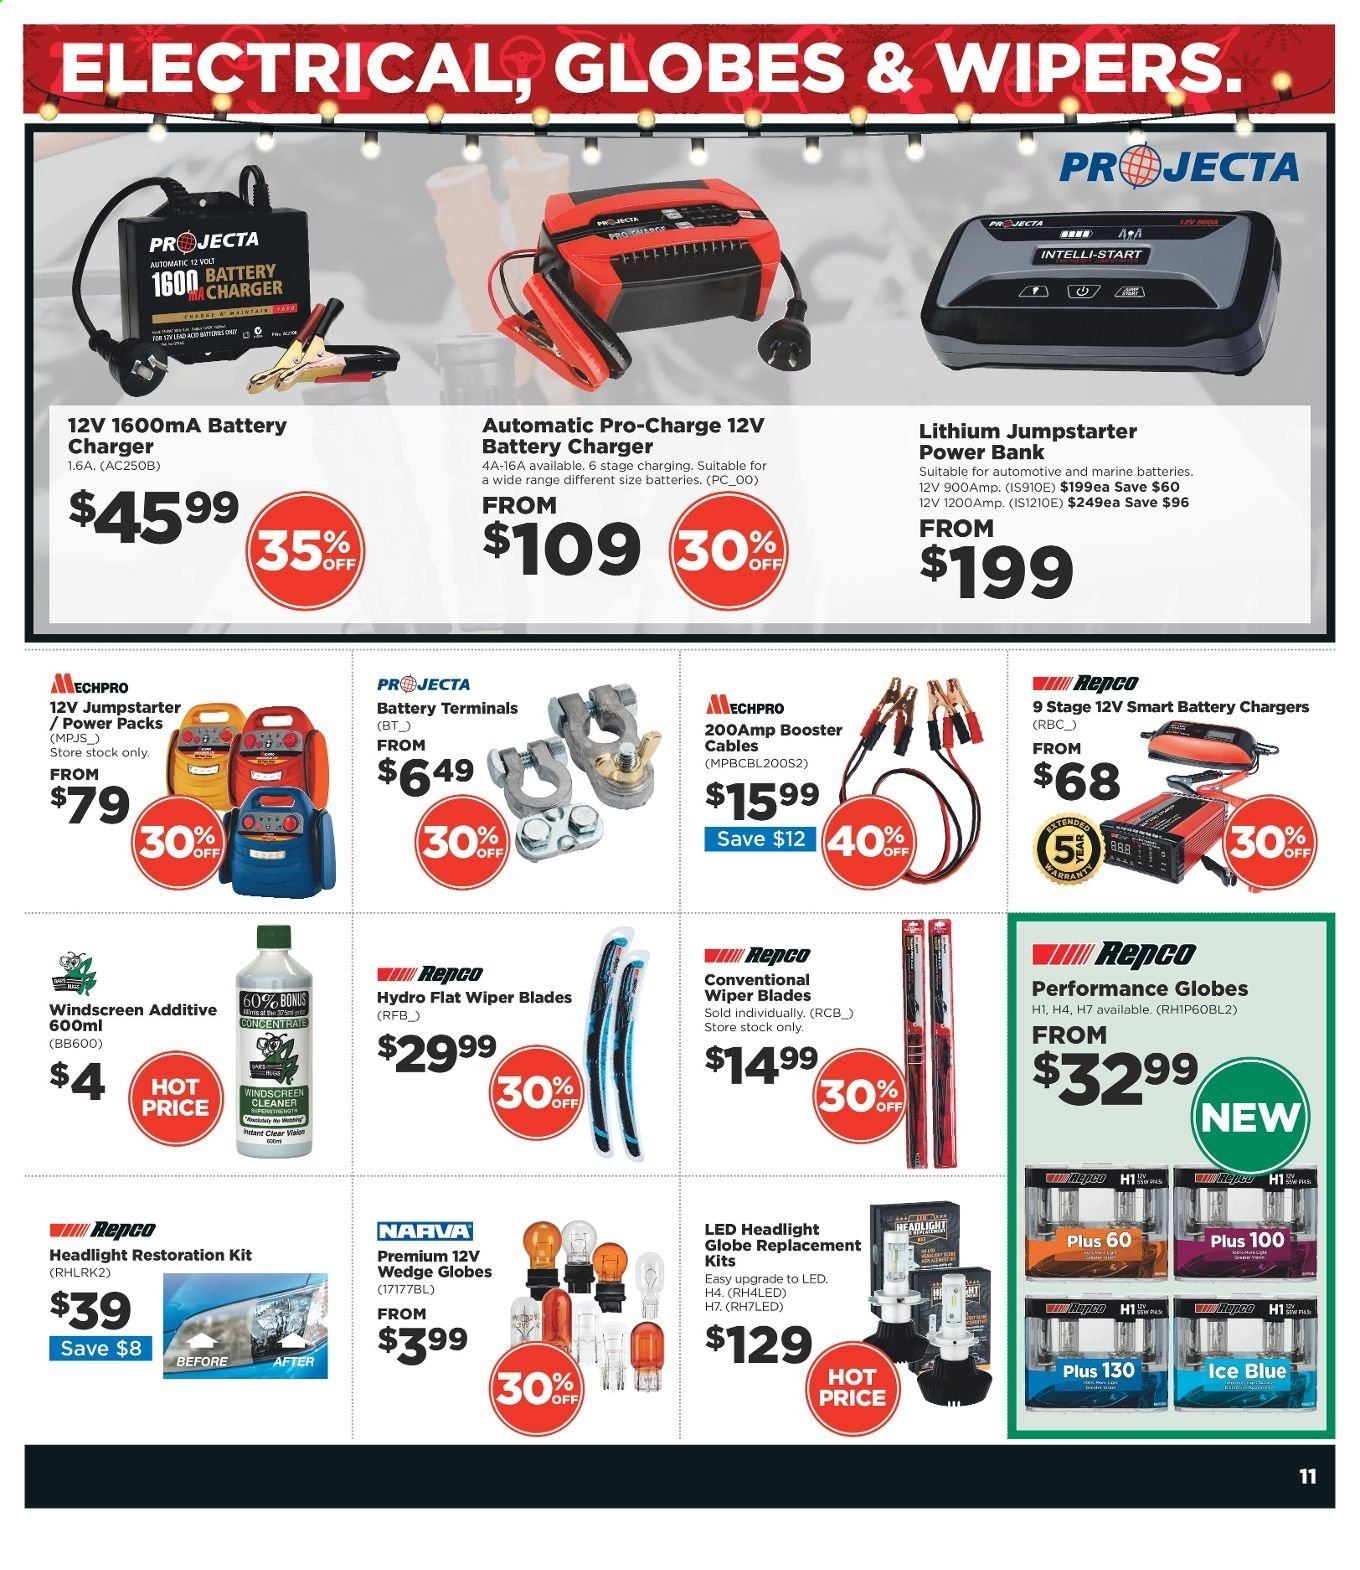 Repco catalogue  - 16.12.2019 - 22.12.2019. Page 11.